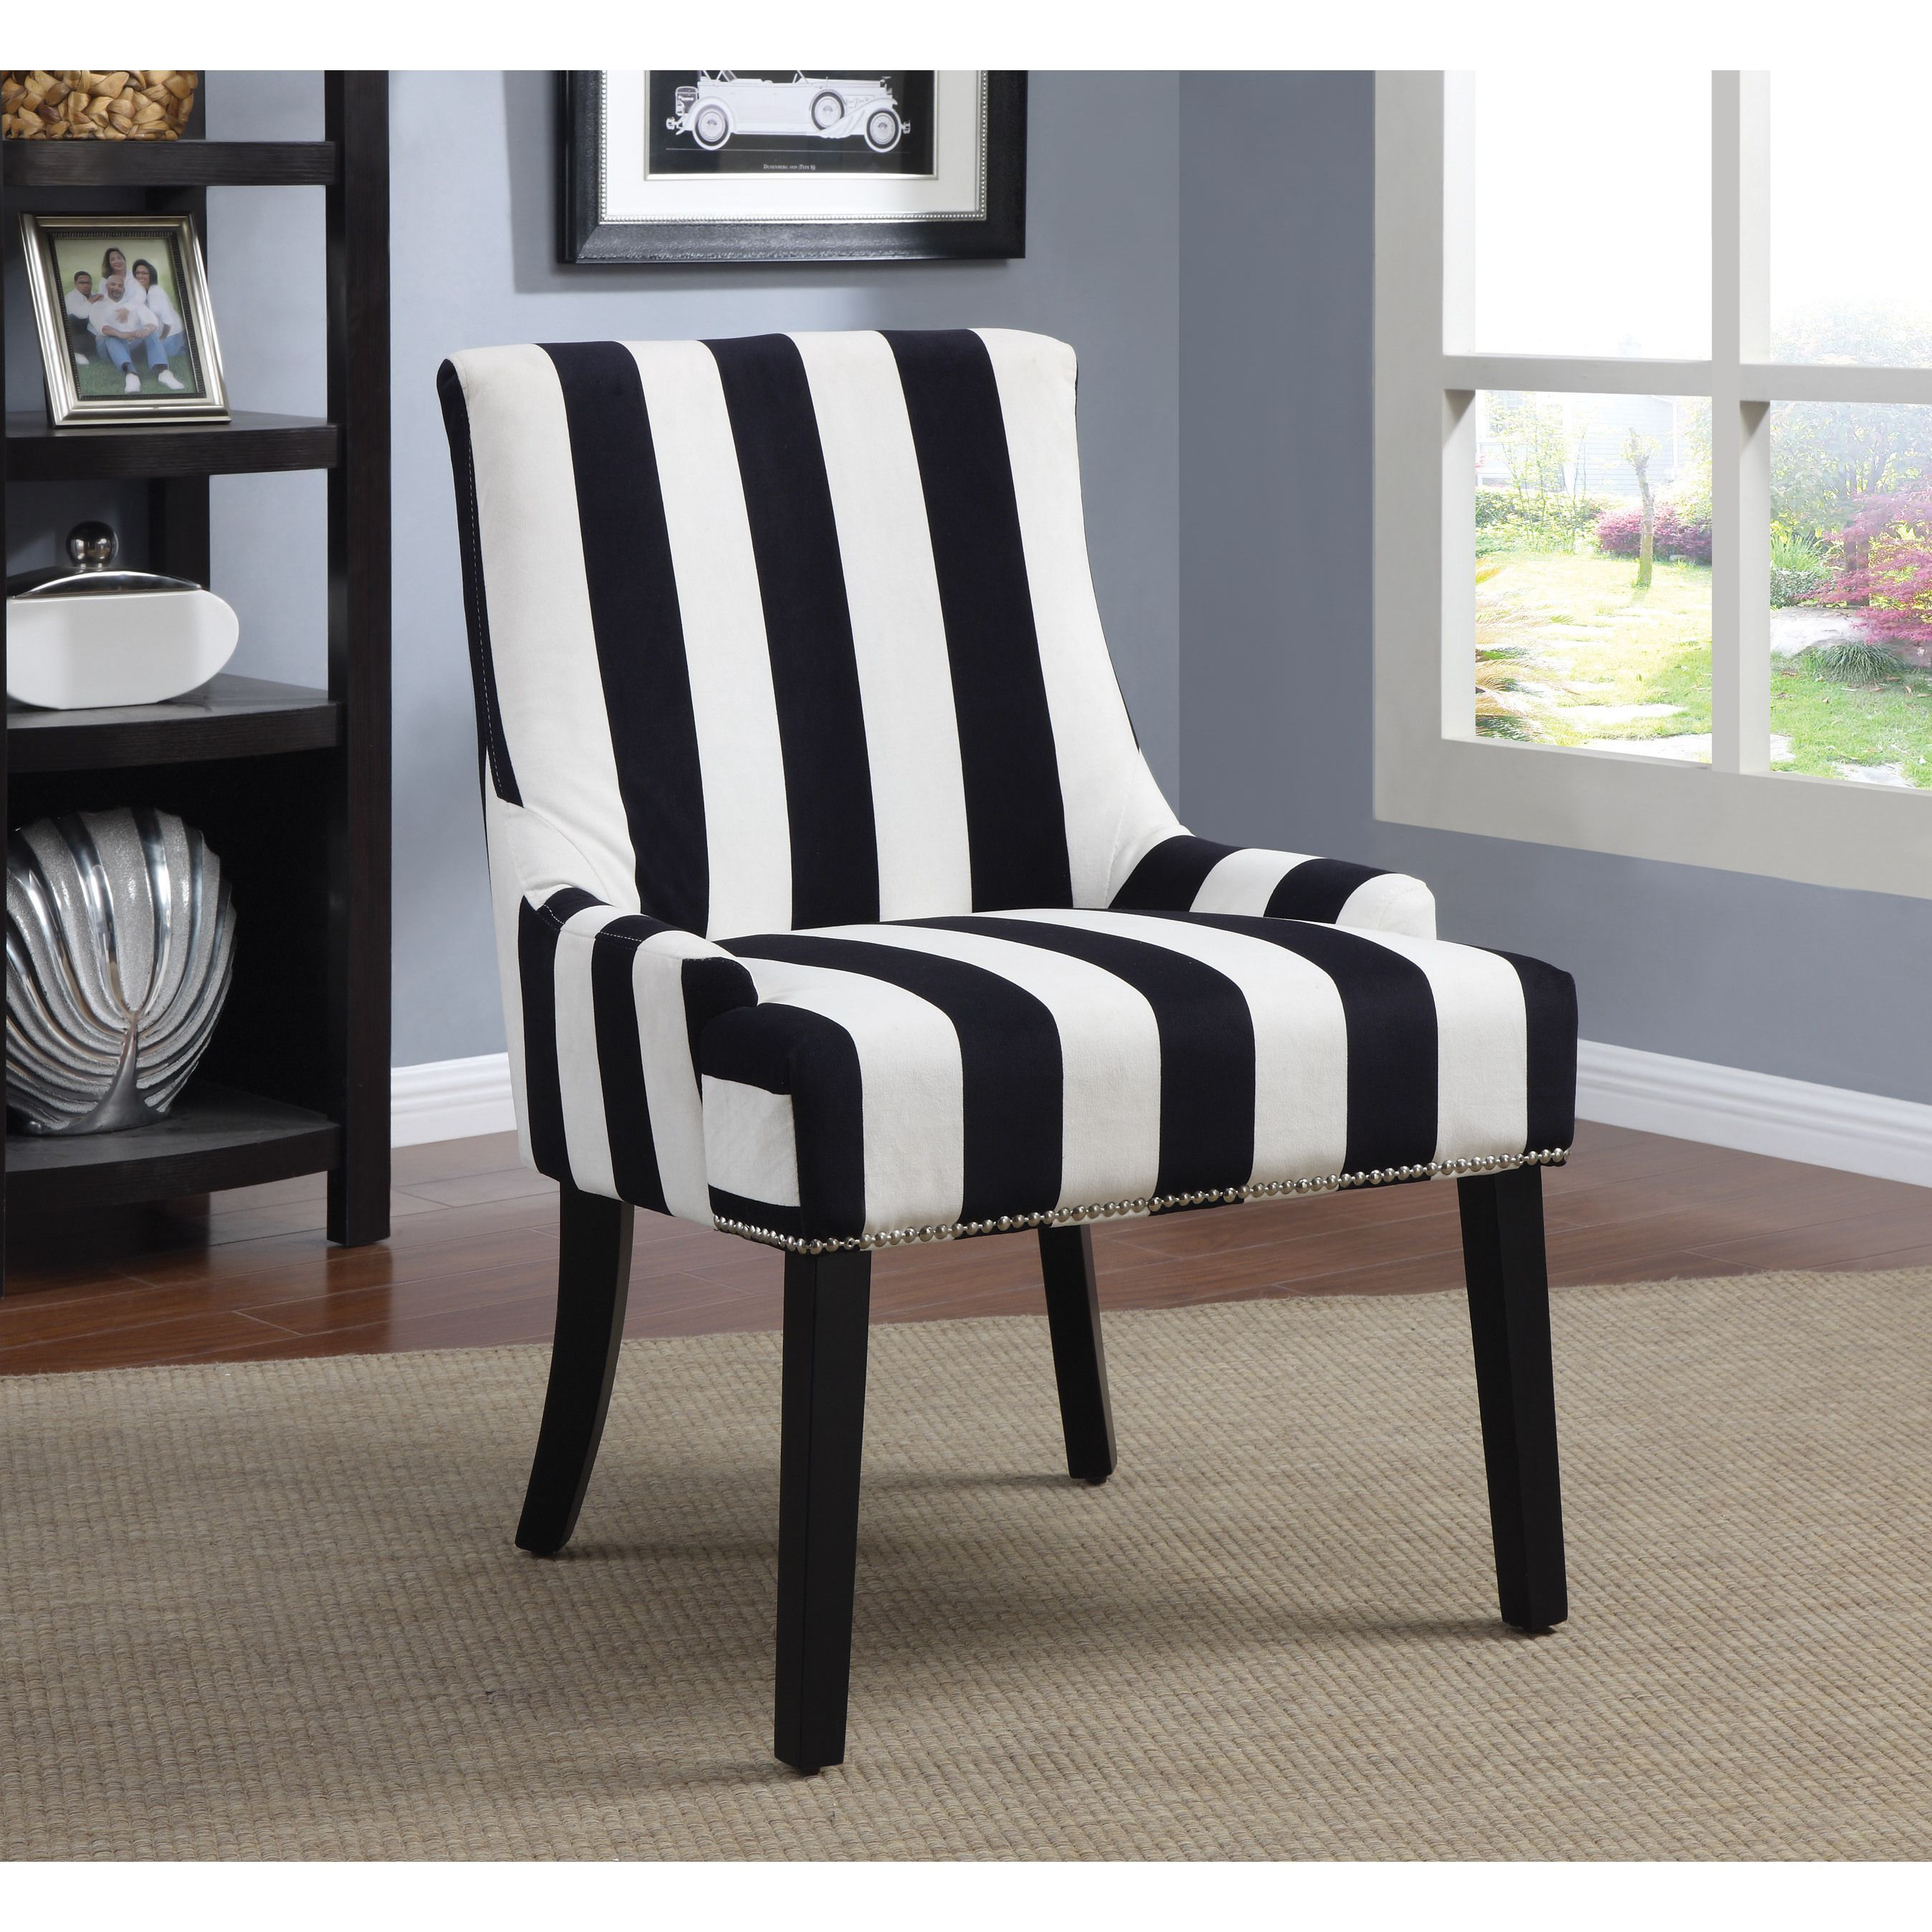 Coaster pany Black and White Striped Accent Chair Black and